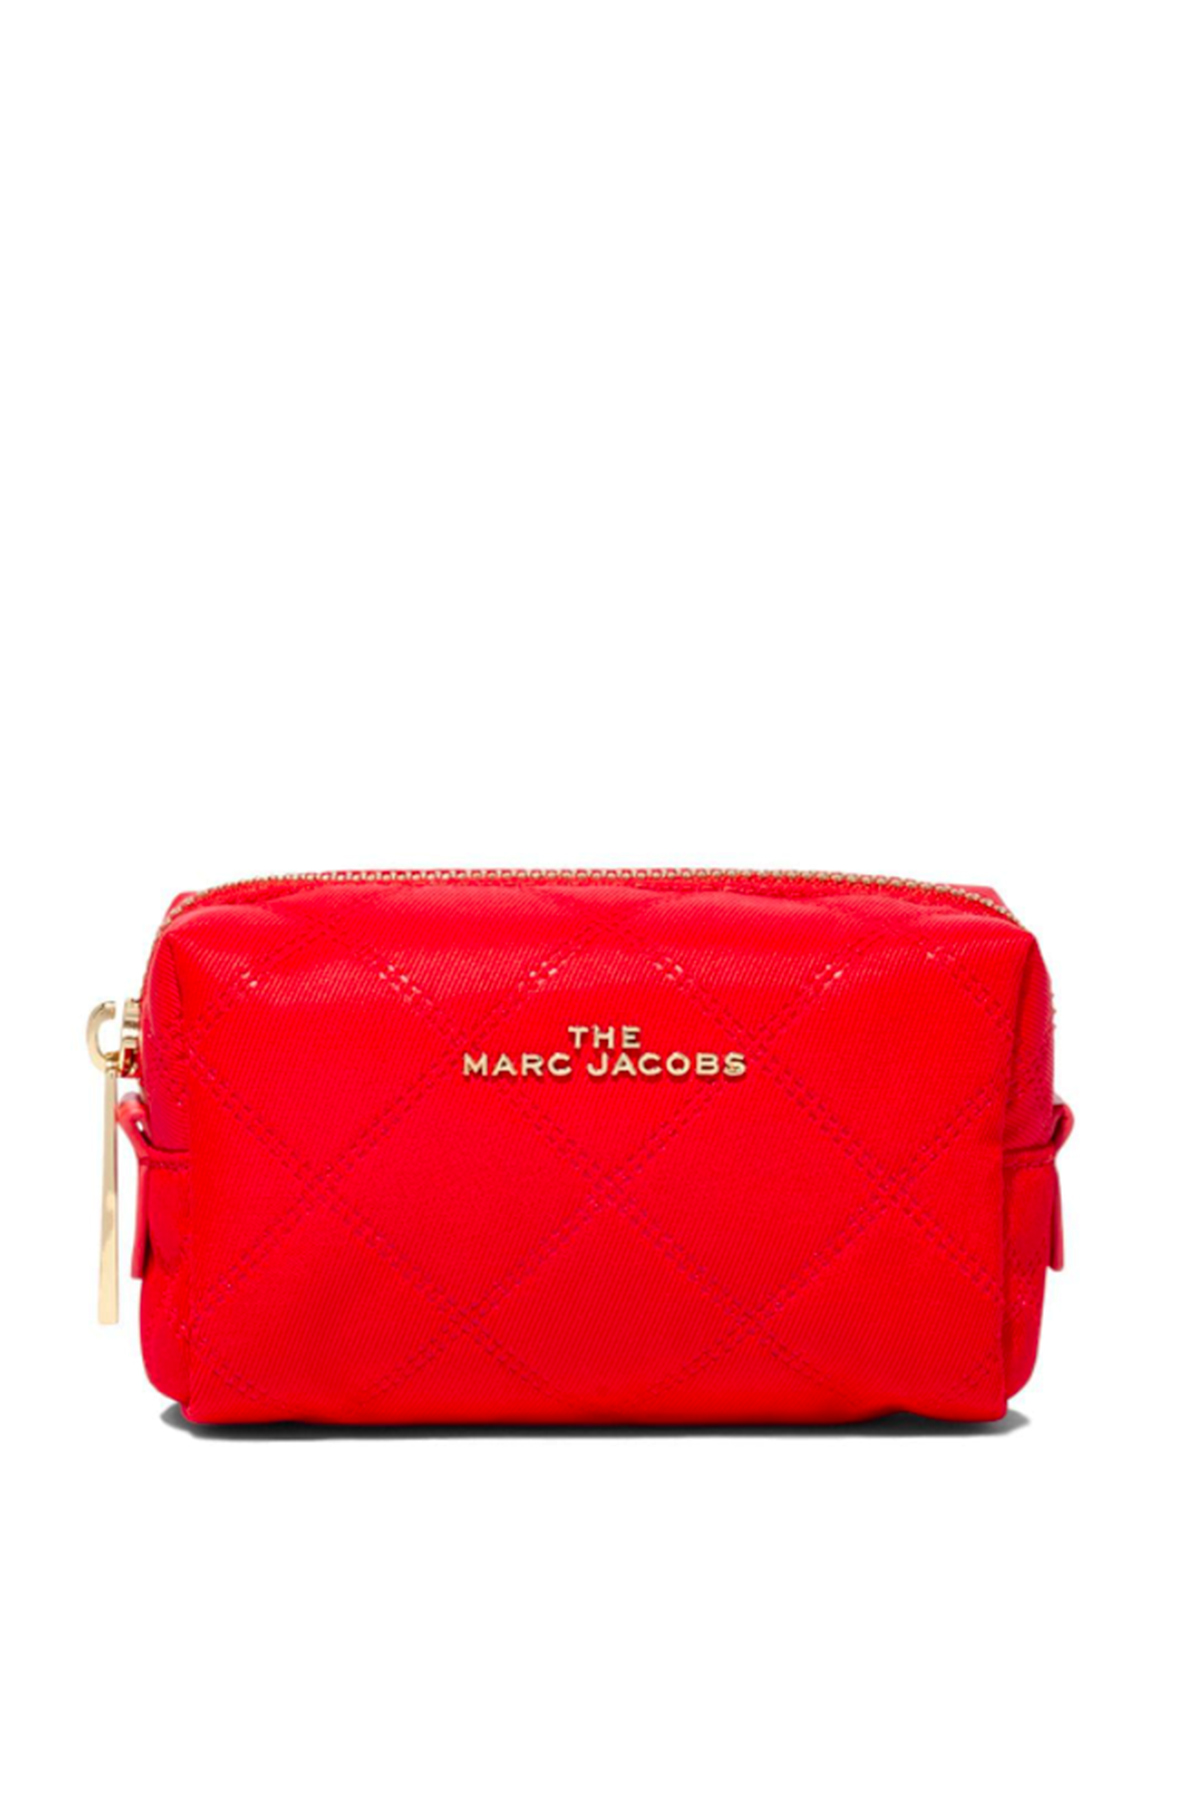 Marc Jacobs BAGS.